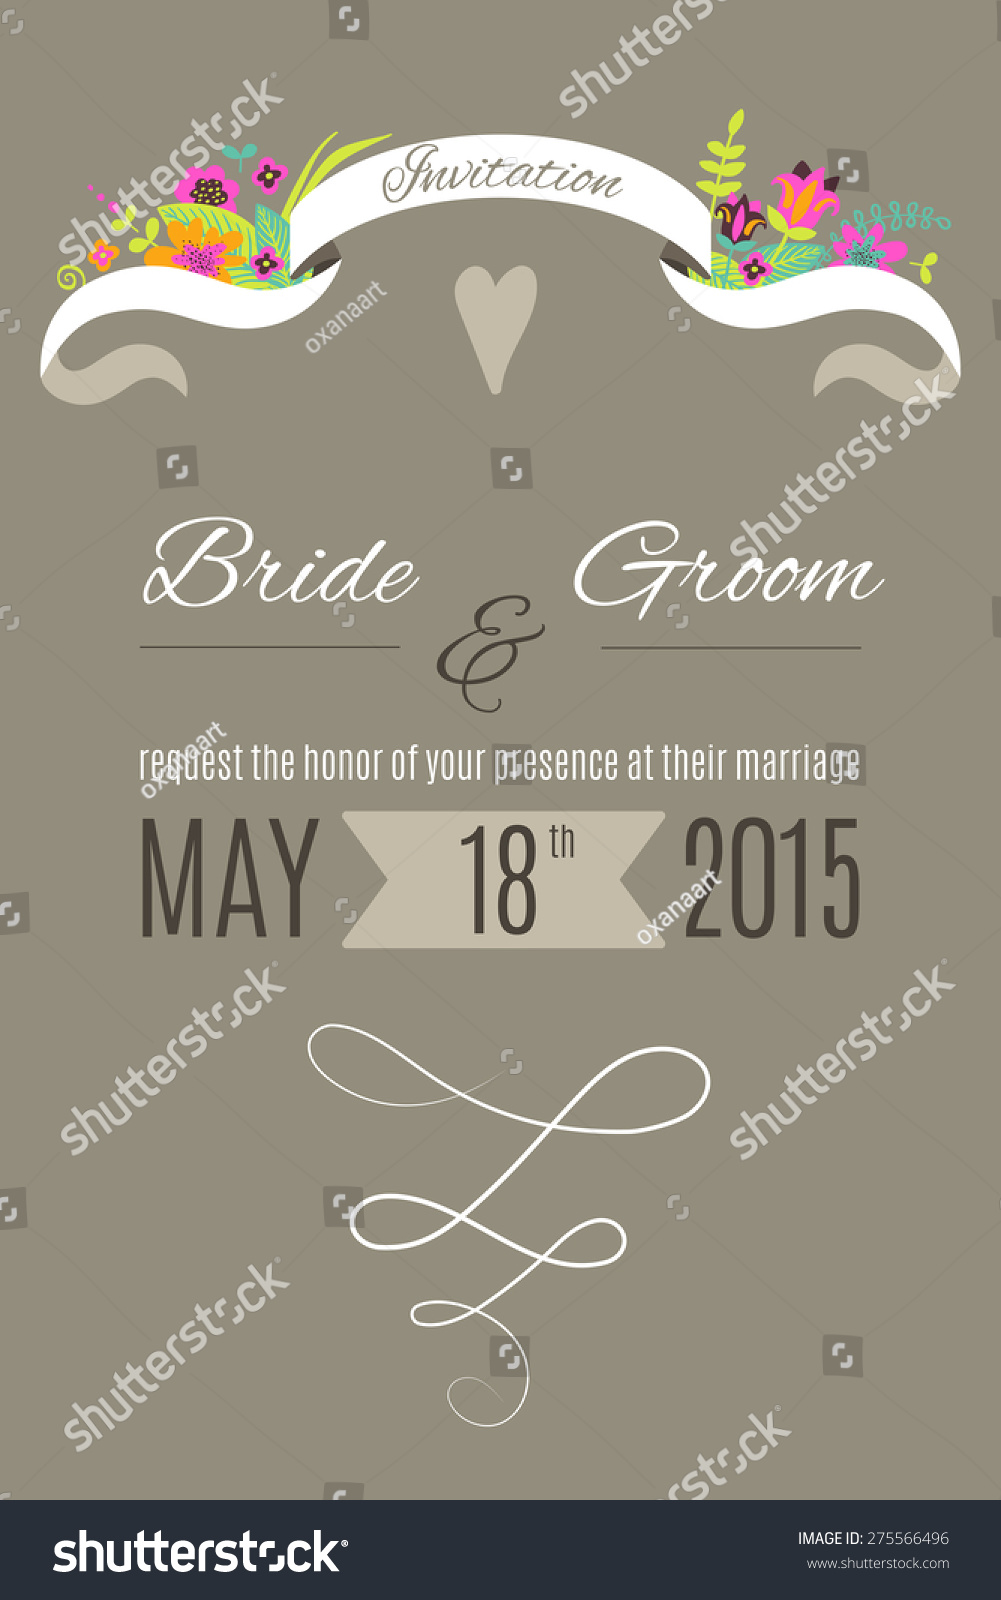 Vector Wedding Invitation Template With Ribbon Flowers